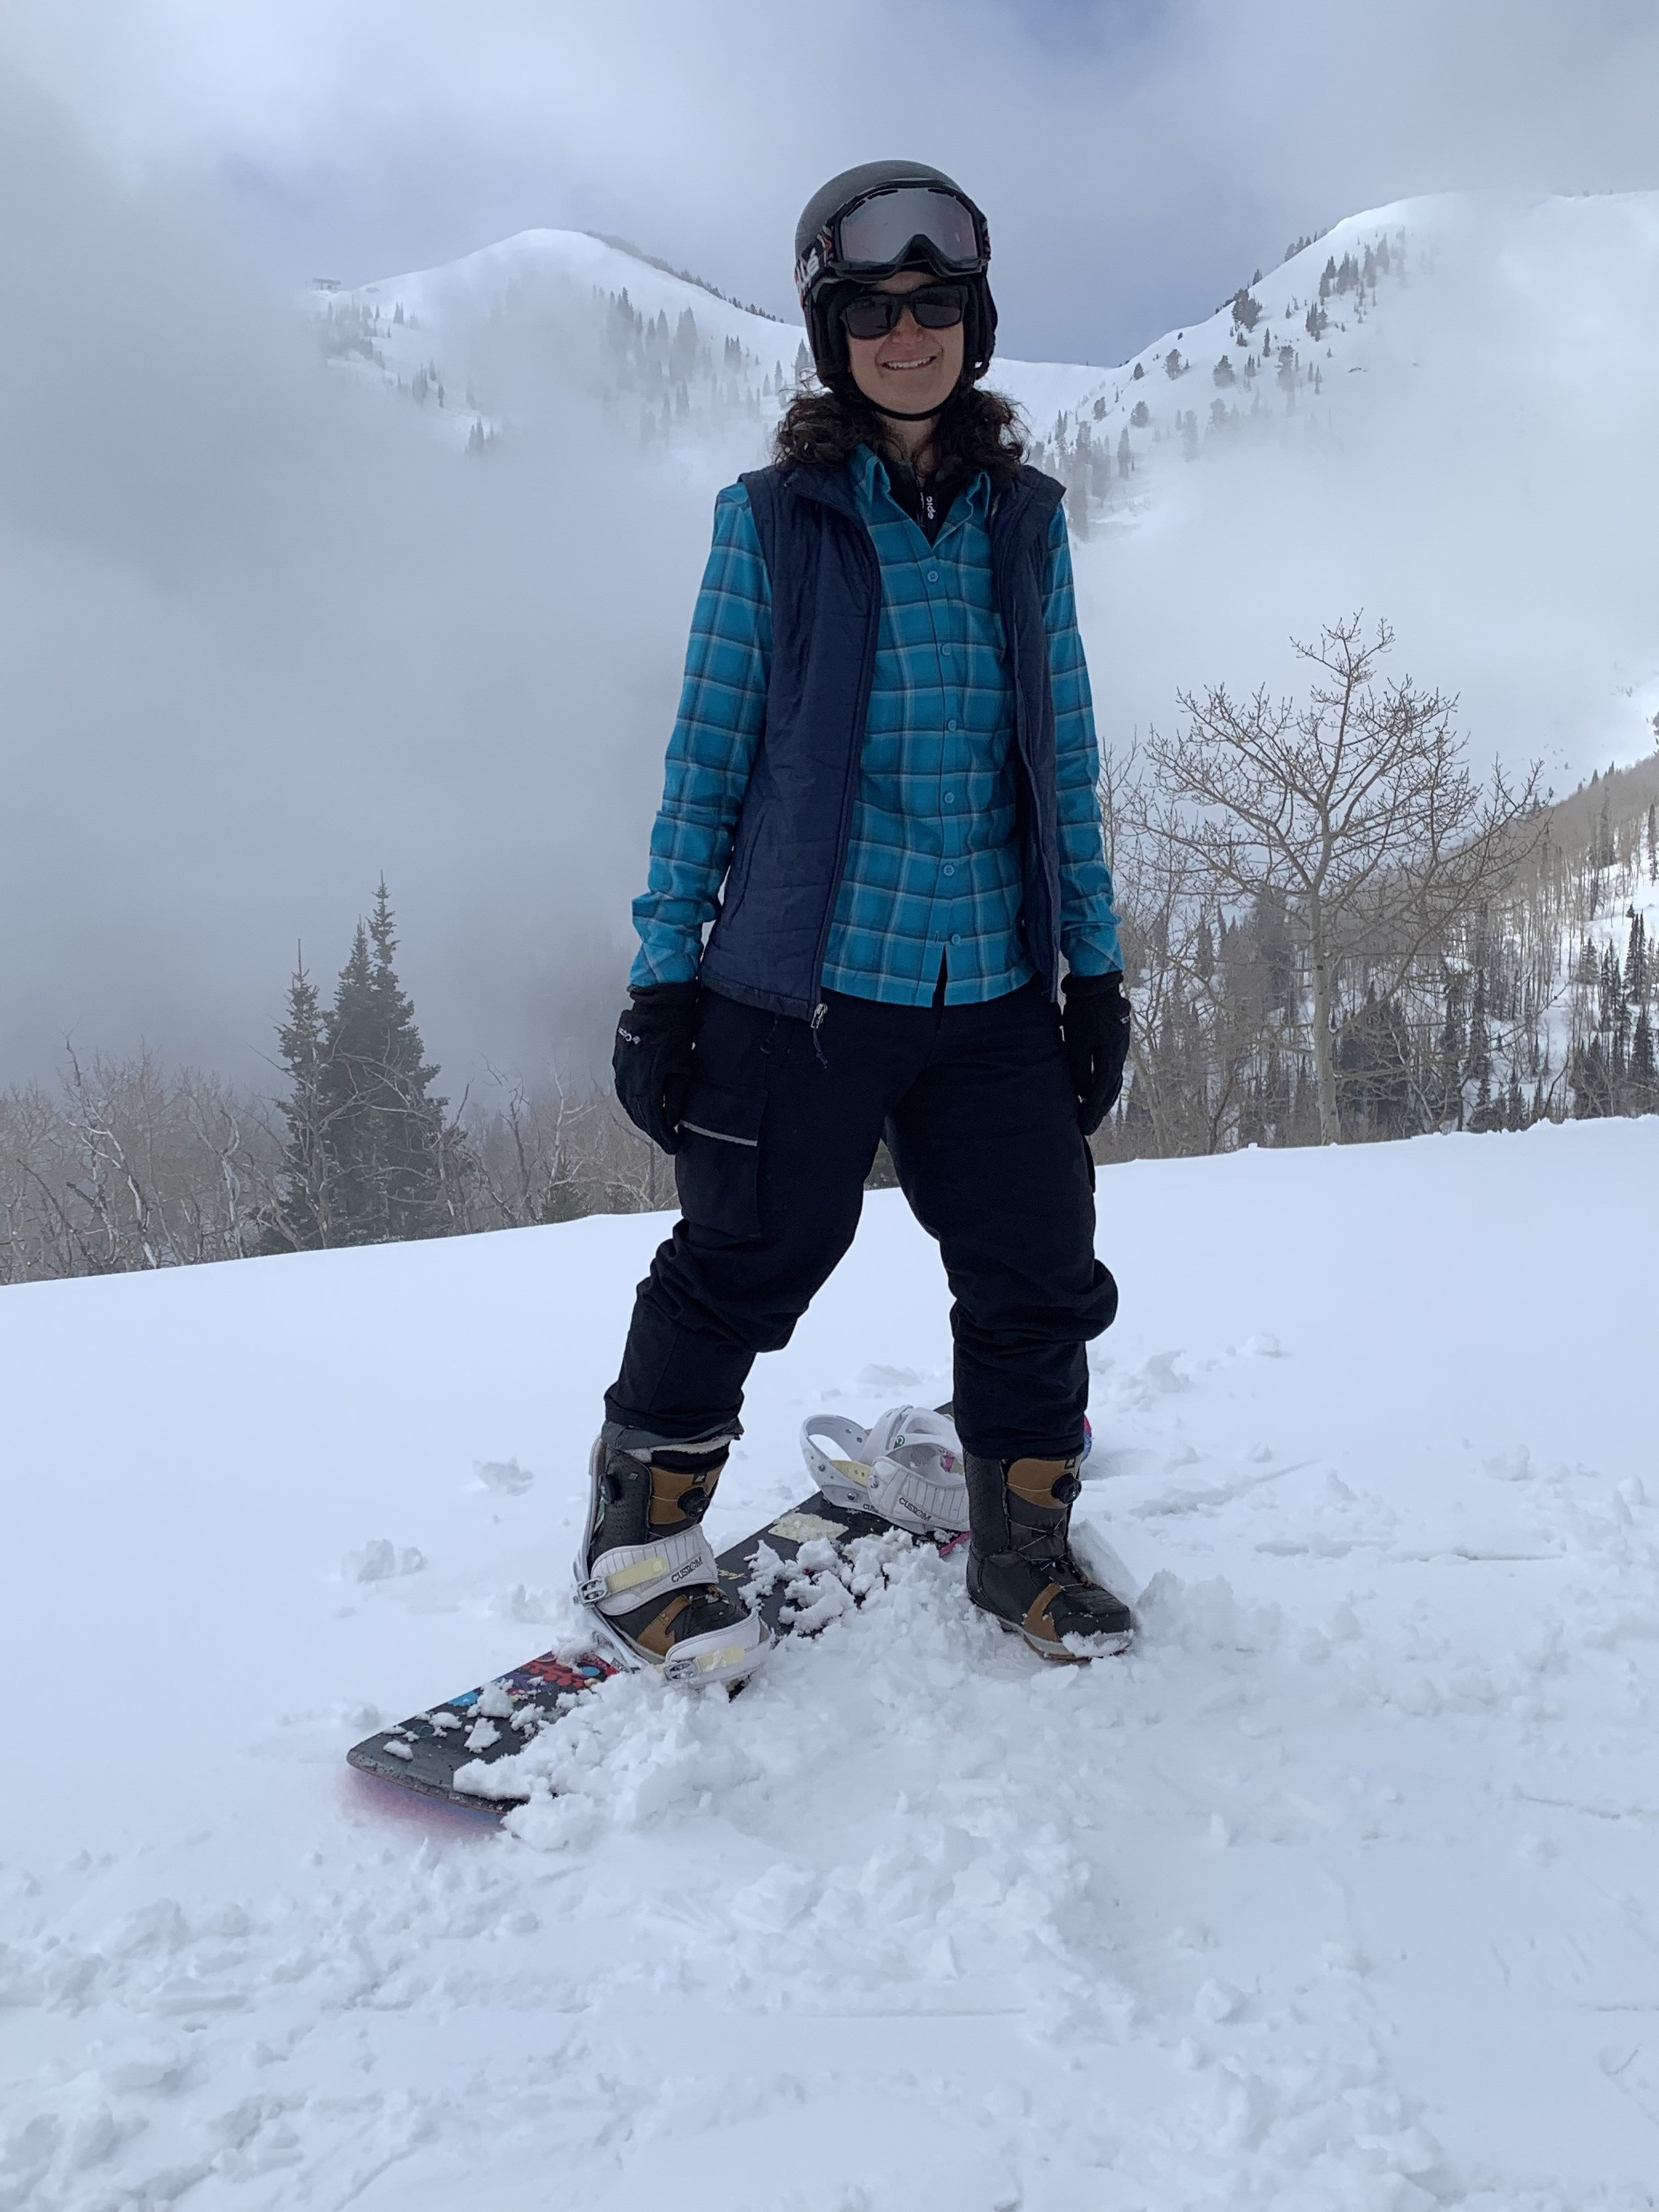 Laura on Snowboard.jpeg